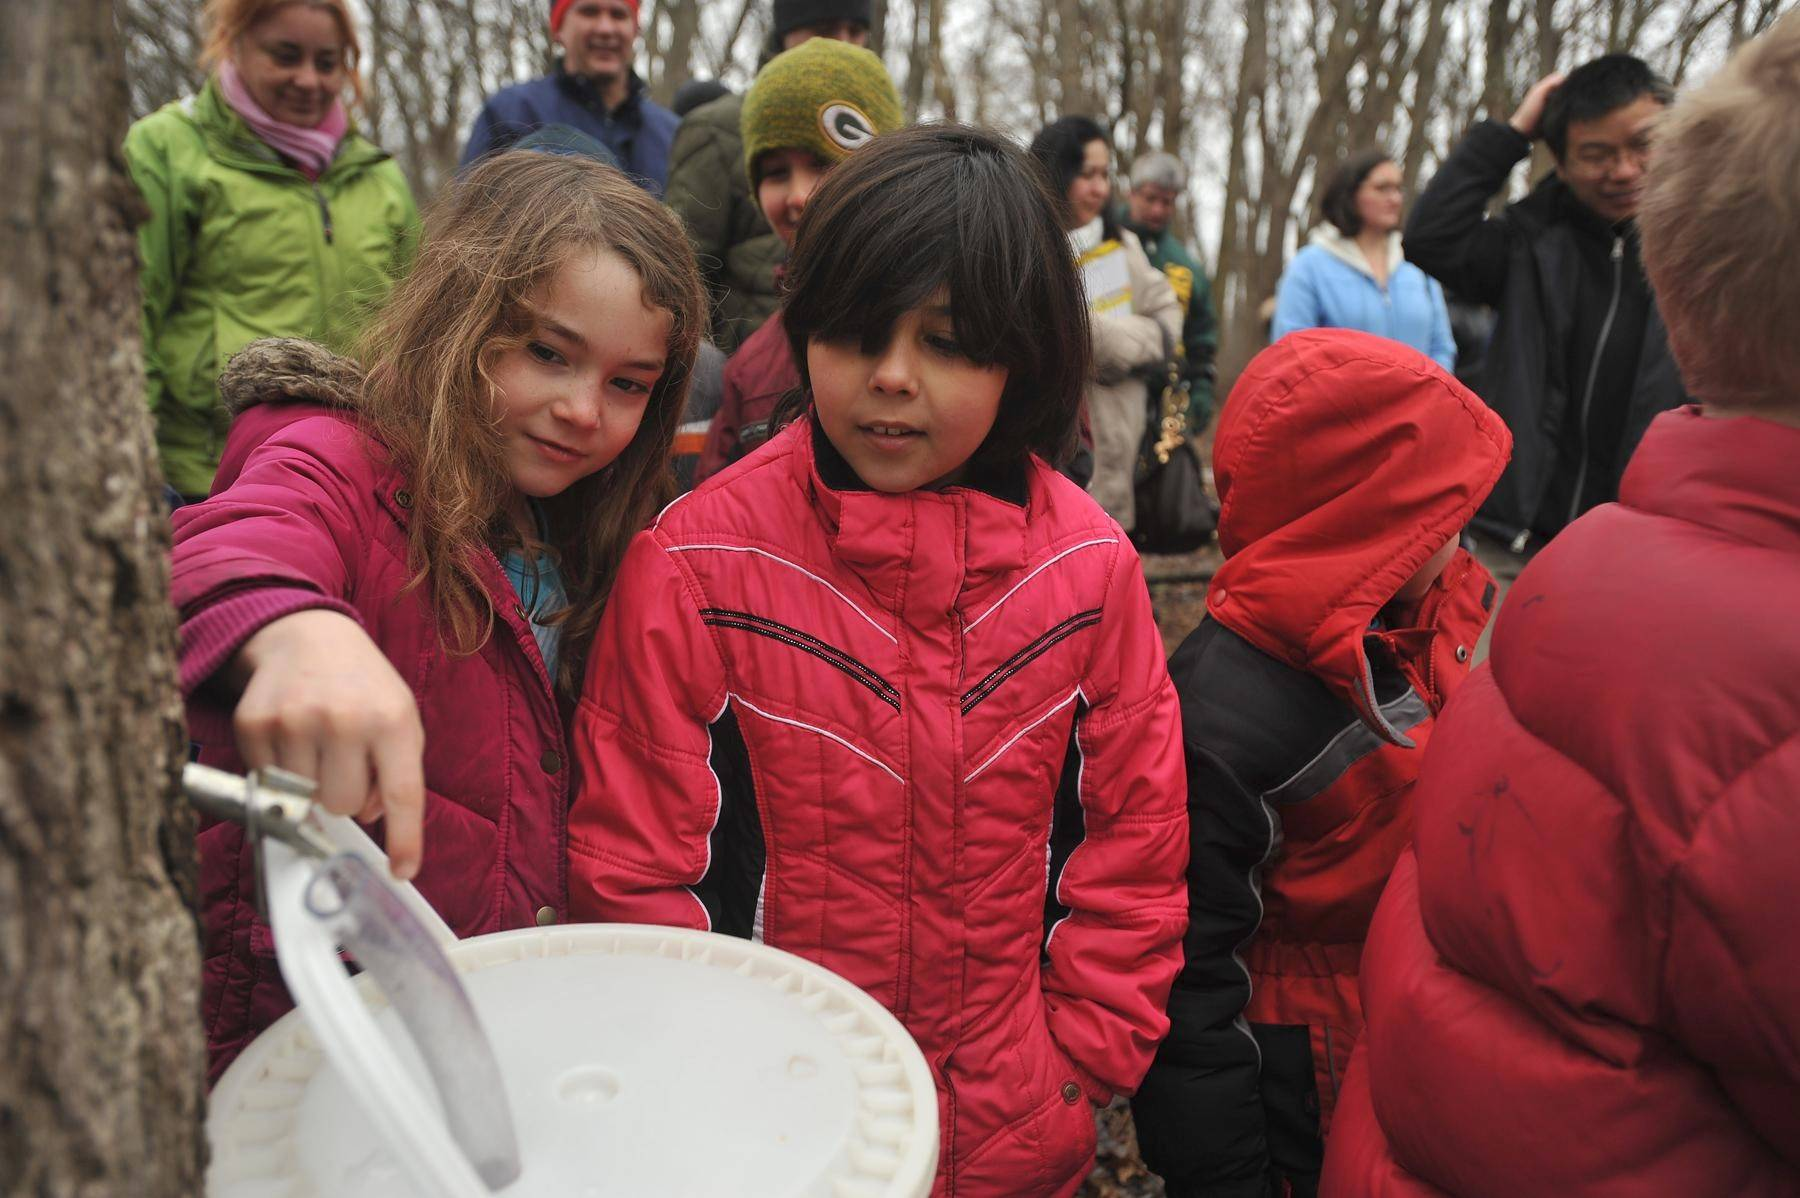 Visitors at the free MapleFest event March 15 at Red Oak Nature Center will tap a maple tree and learn how its sap is converted into tasty maple syrup.